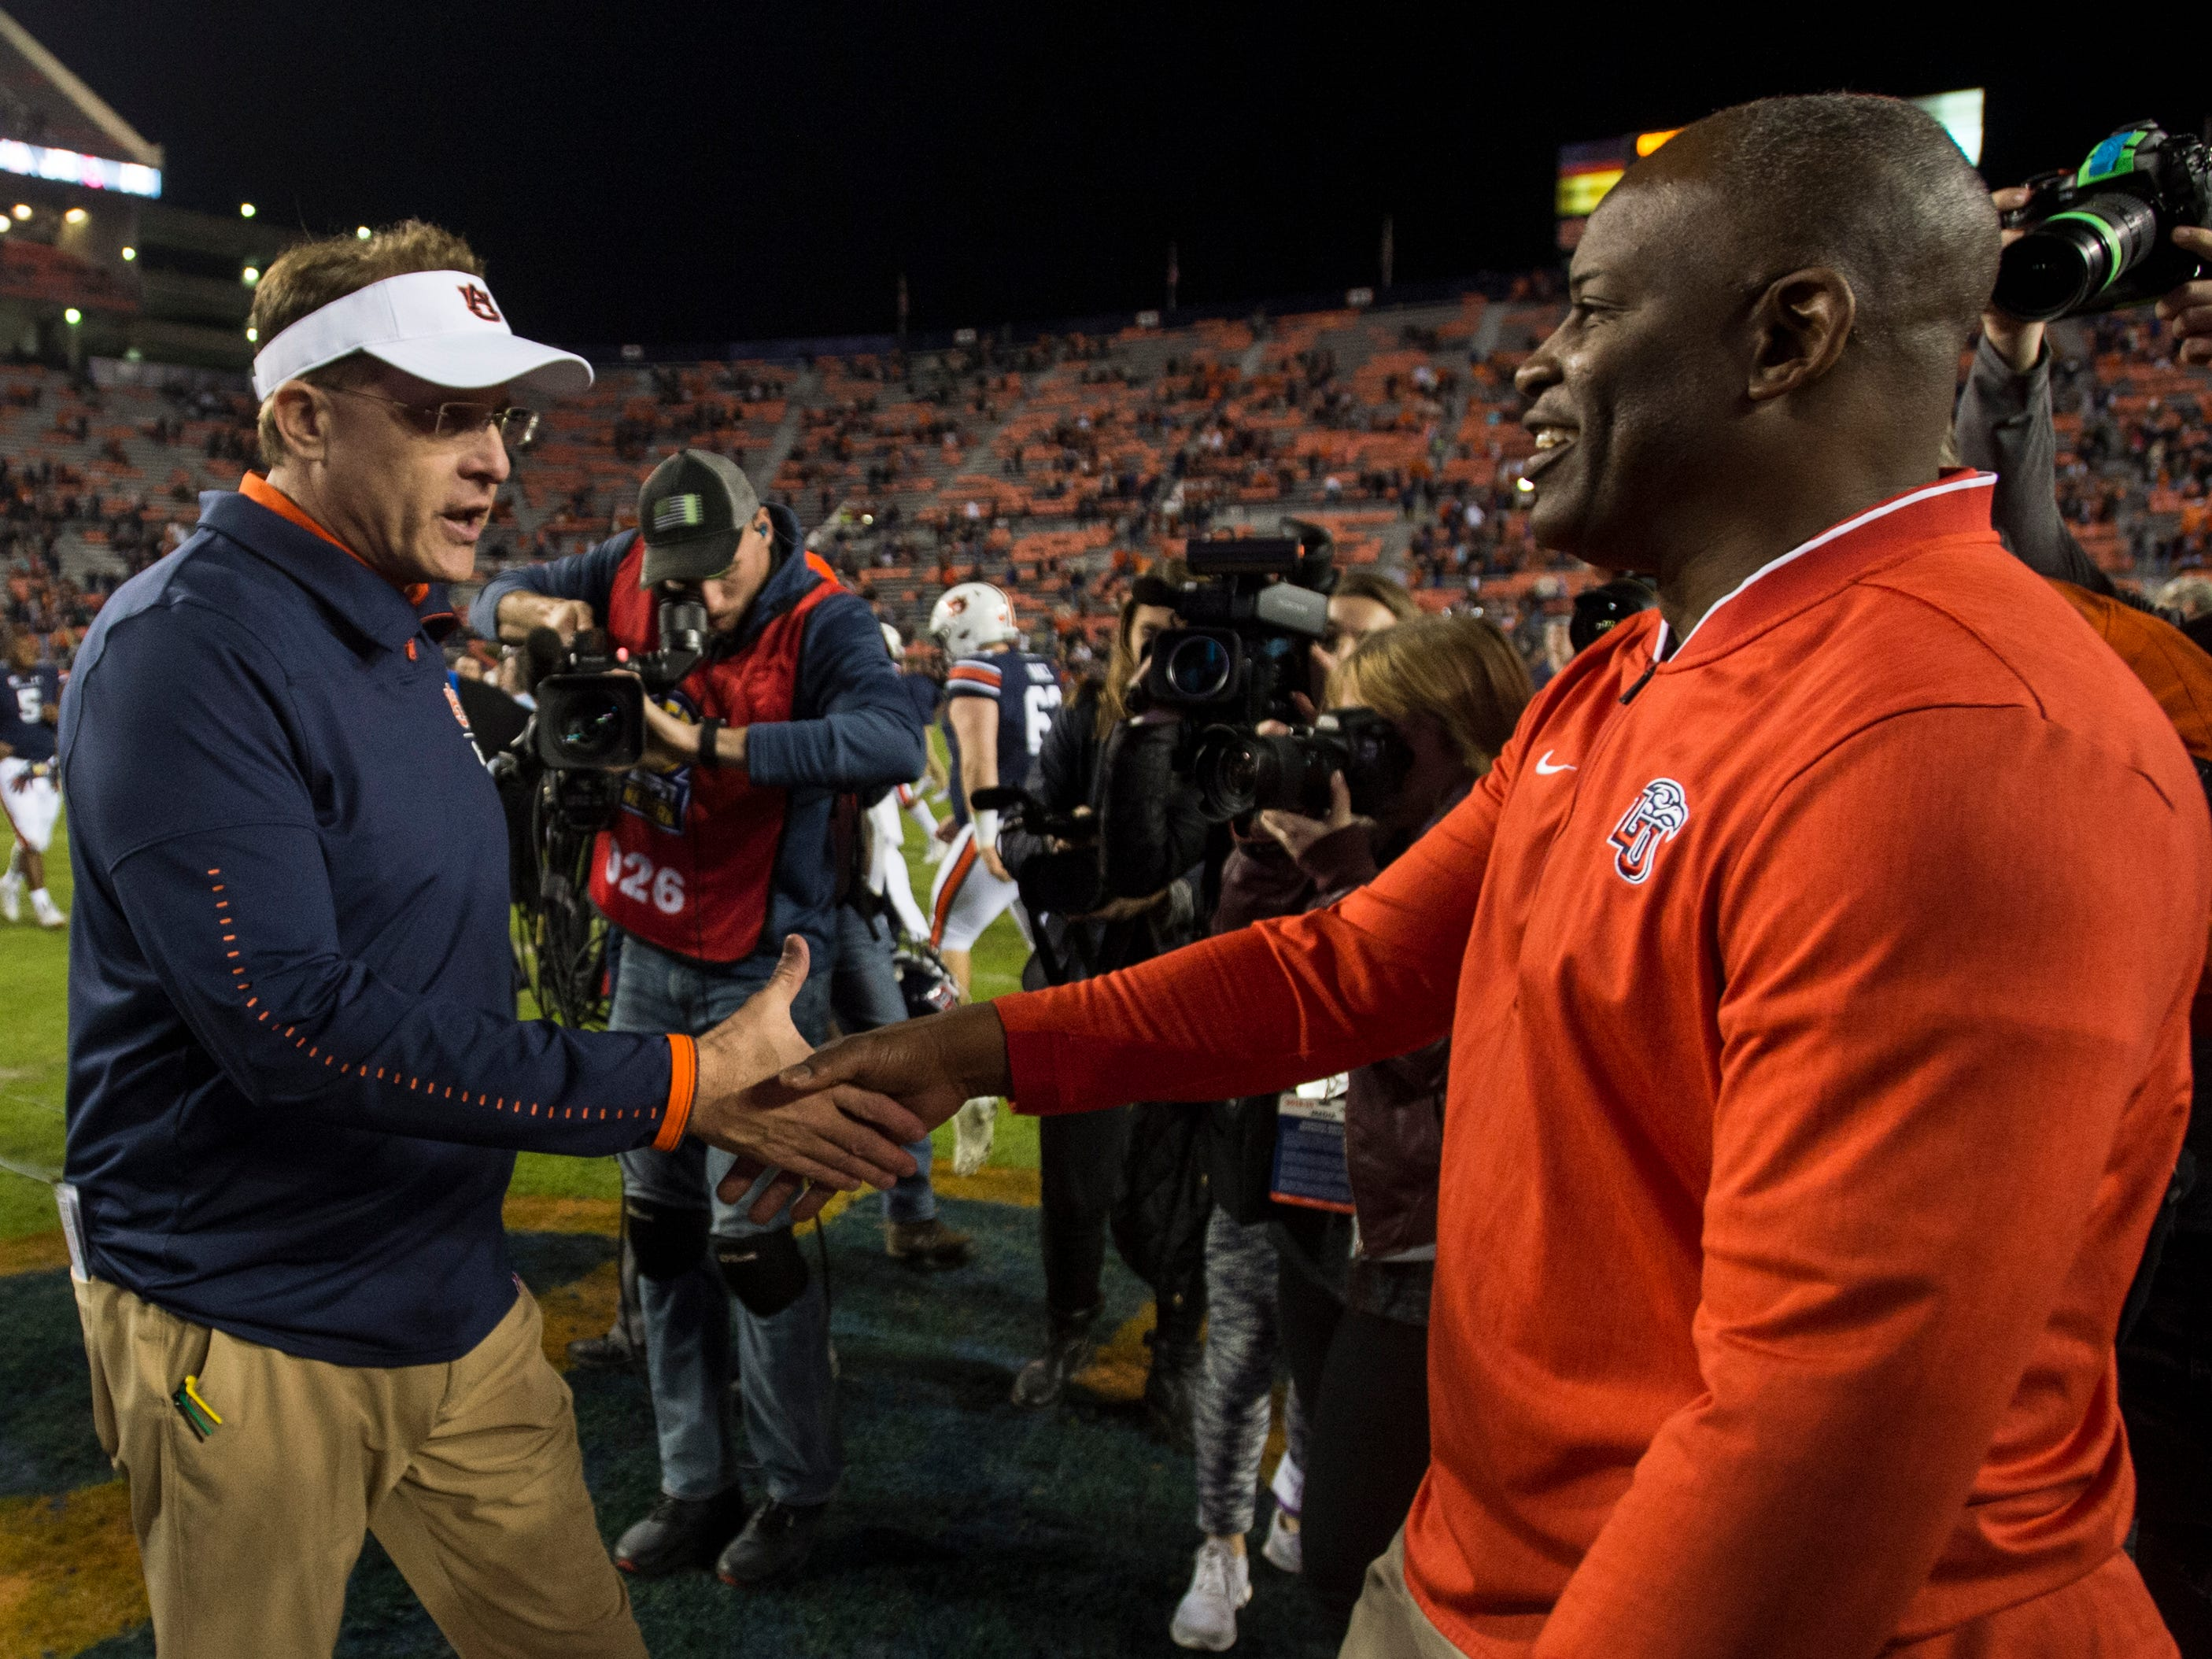 Auburn head coach Gus Malzahn shakes hands with Liberty head coach Turner Gill after the game at Jordan-Hare Stadium in Auburn, Ala., on Saturday, Nov.. 17, 2018. Auburn defeated Liberty 53-0.